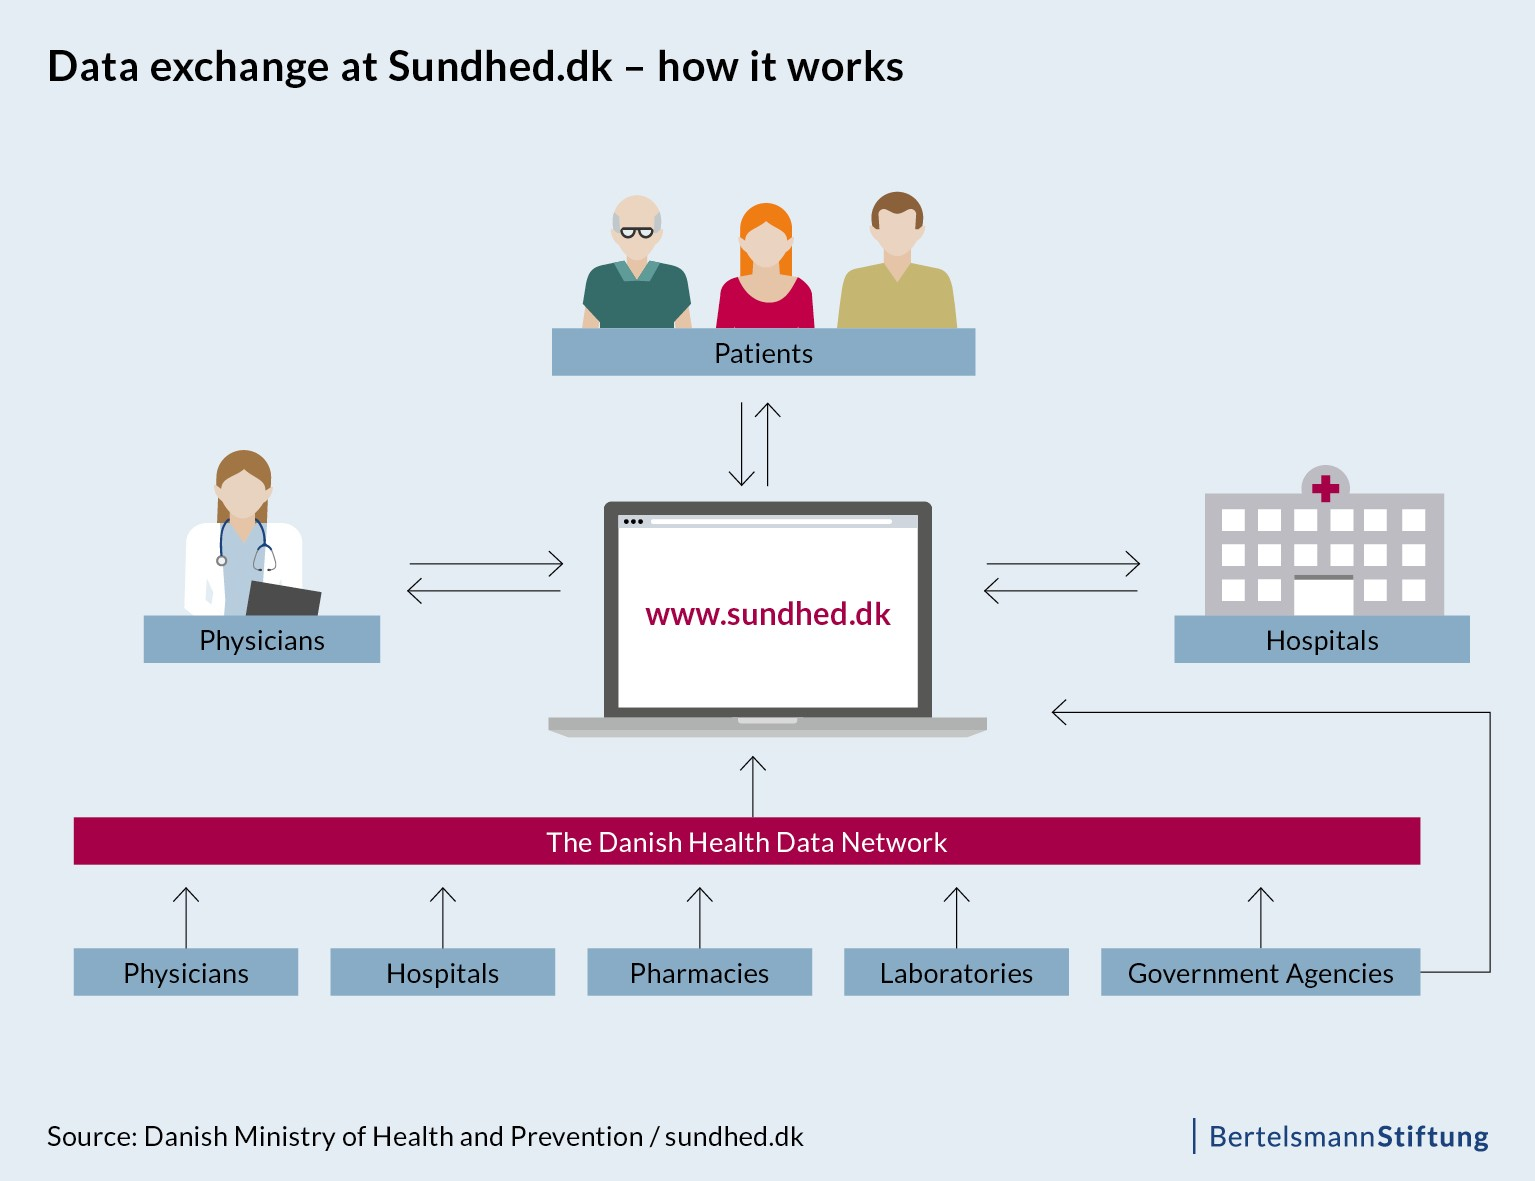 Data exchange at Sundhed.dk - how it works